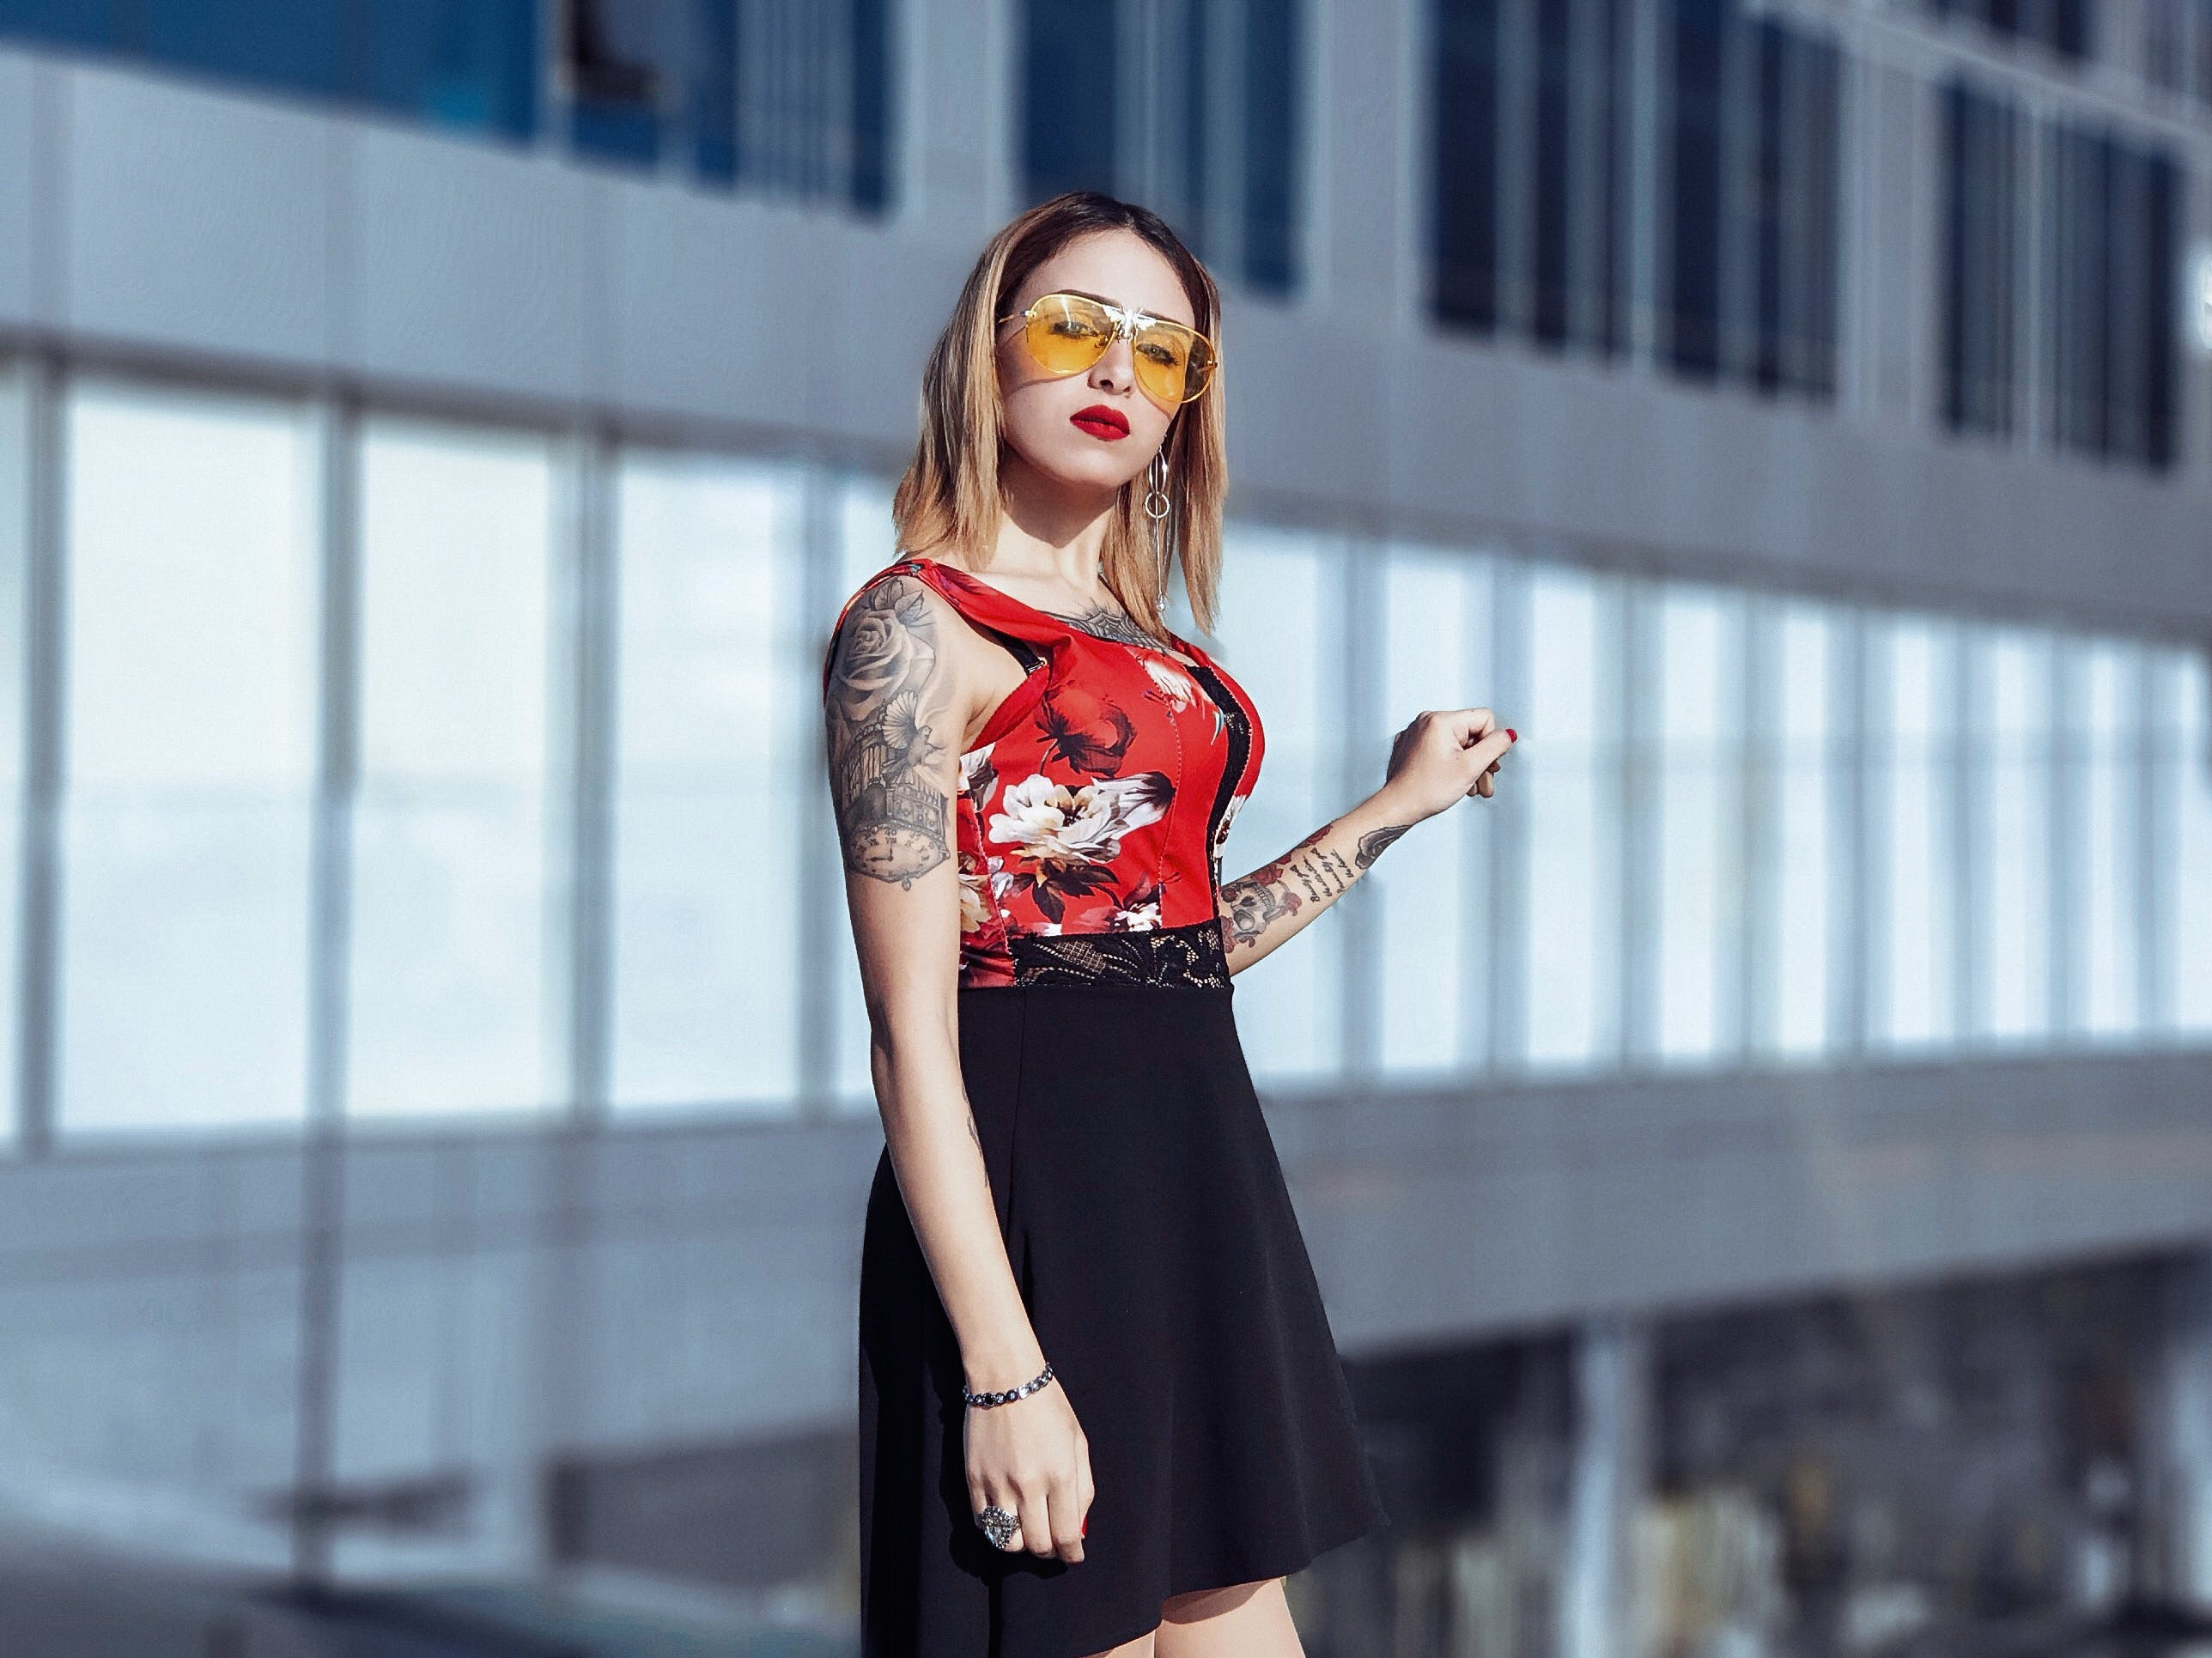 Woman In Red And Black Floral Sleeveless Dress